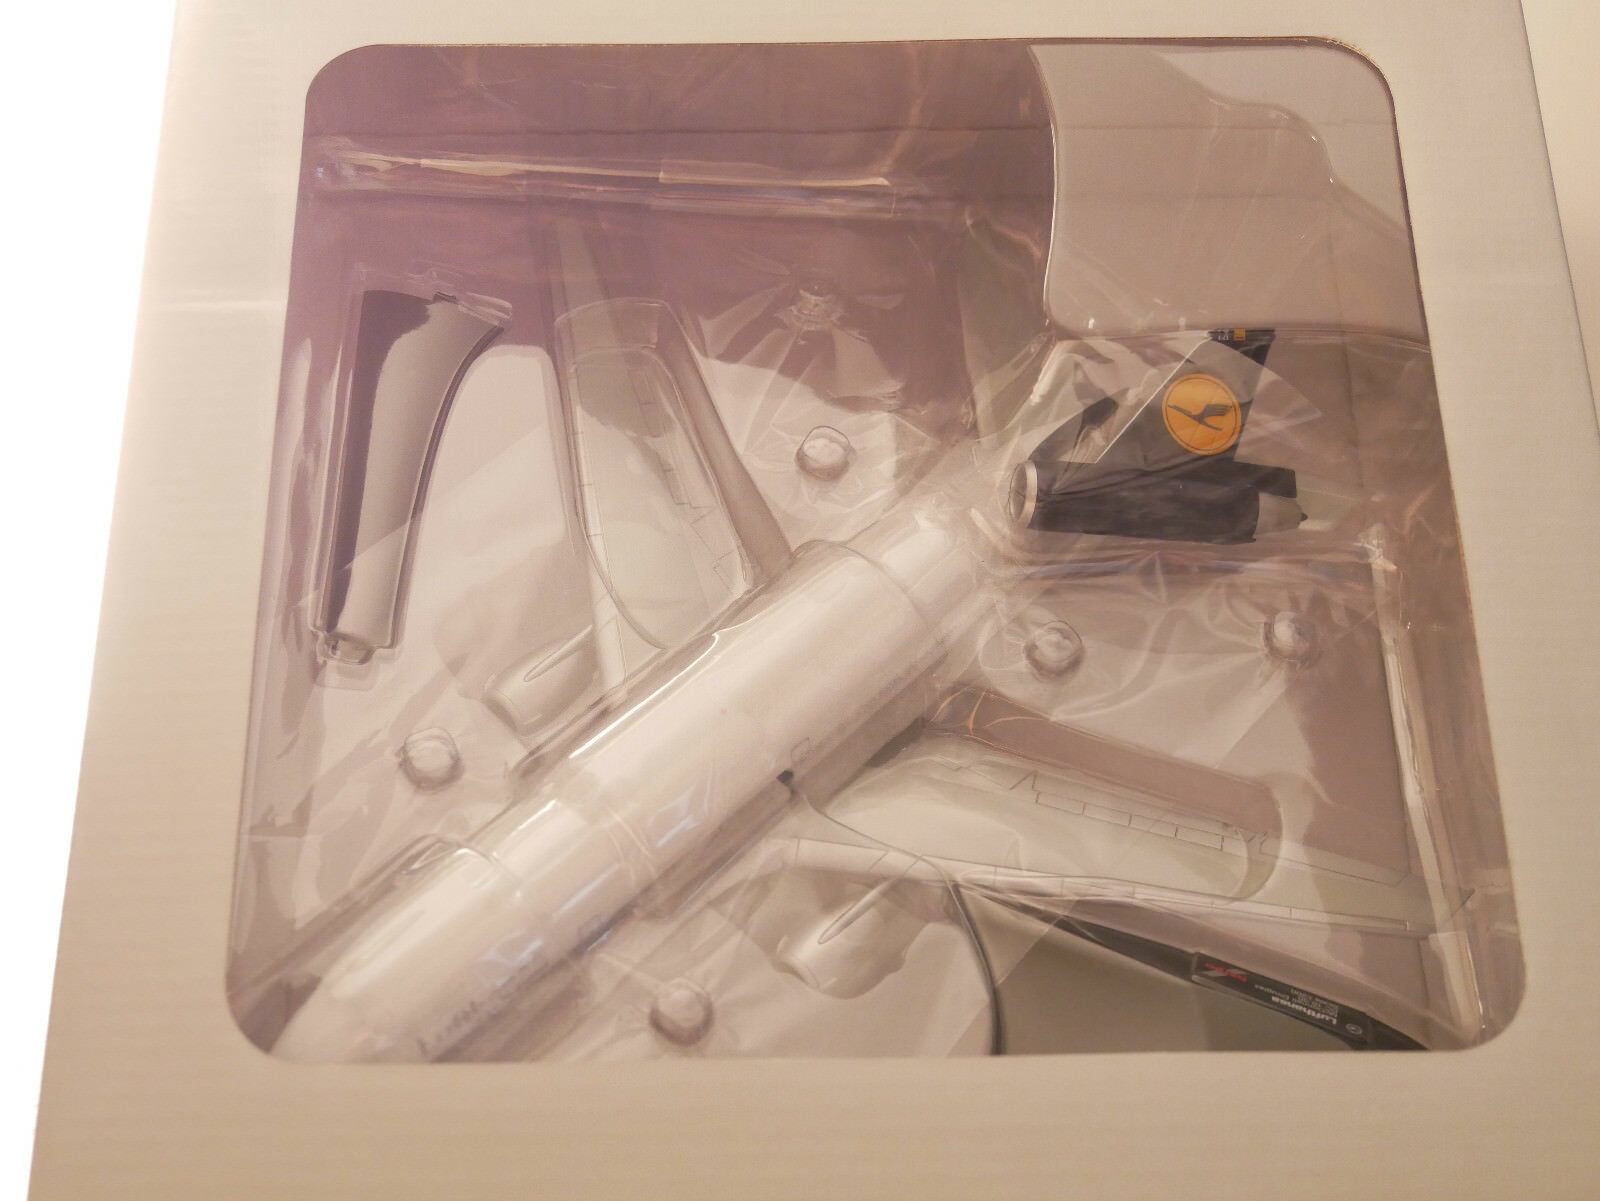 HERPA LUFTHANSA MC DONNELL DOUGLAS DC 10-30 D-ADFO FÜRTH  ART. 552301 1 200 NEW